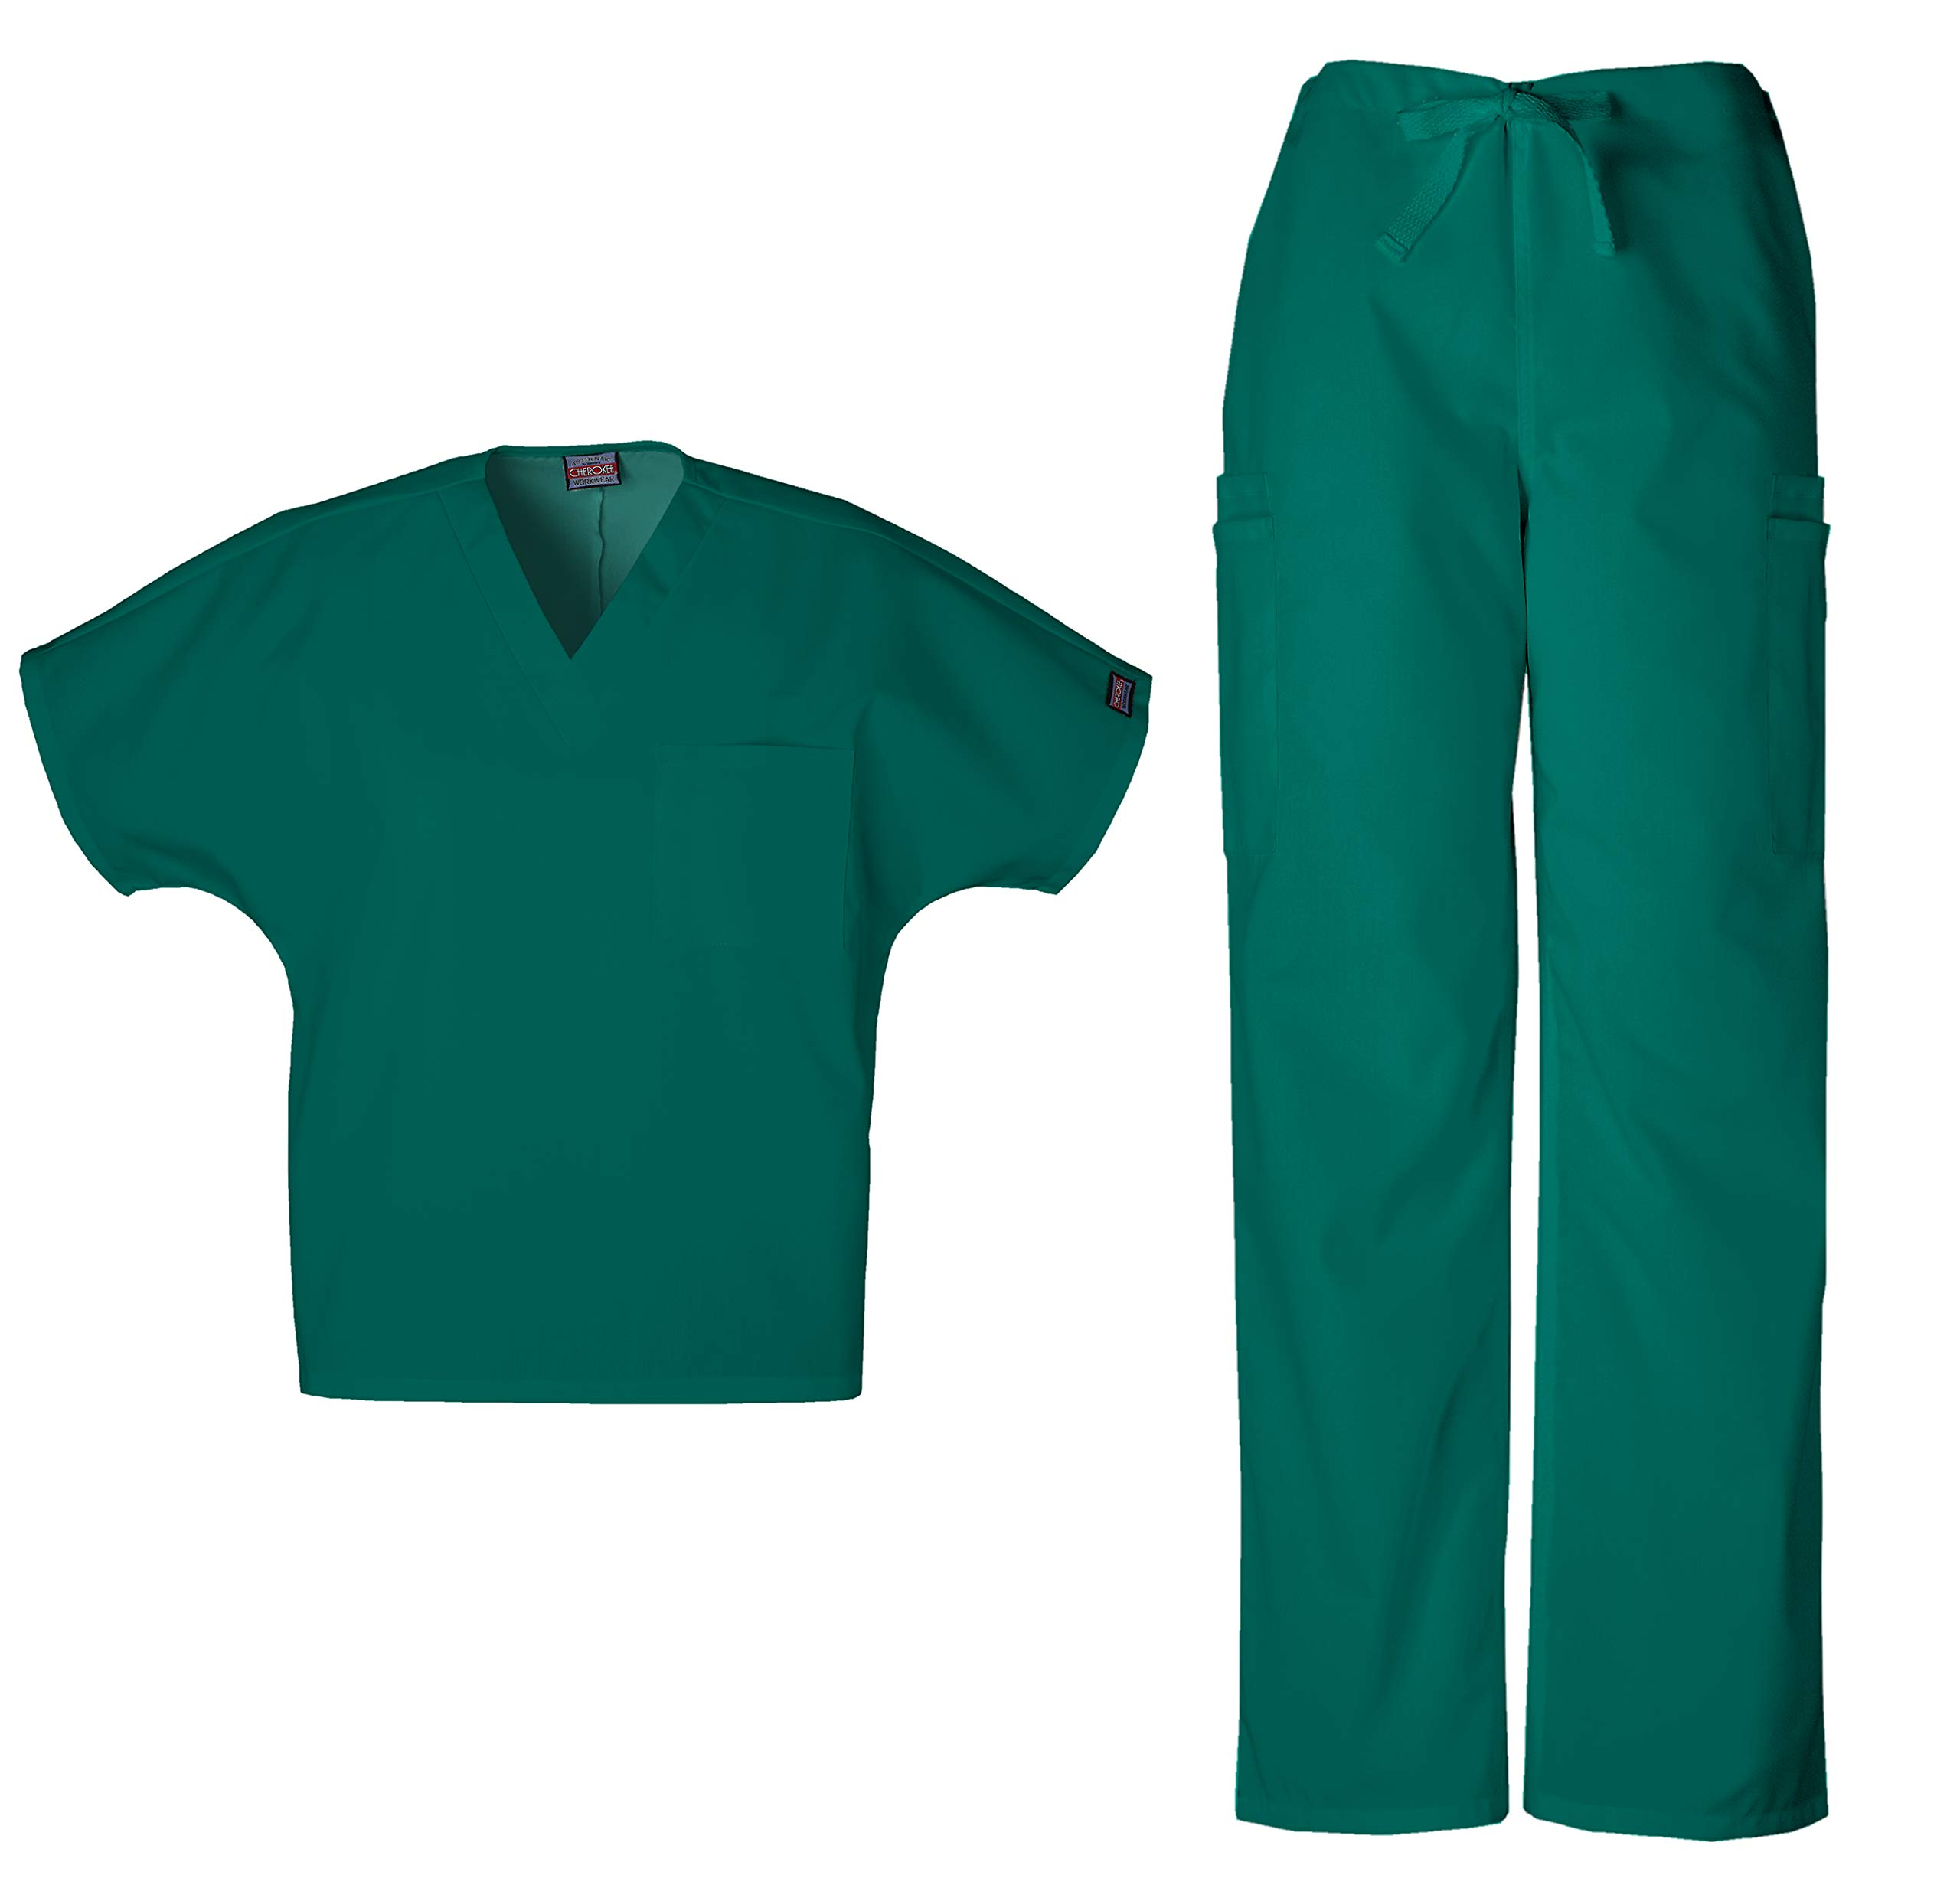 Cherokee Workwear Men's Dental/Medical Uniform Scrub Set - 4777 V-Neck Scrub Top & 4000 Drawstring Cargo Pants (Hunter - Large/Large Tall)